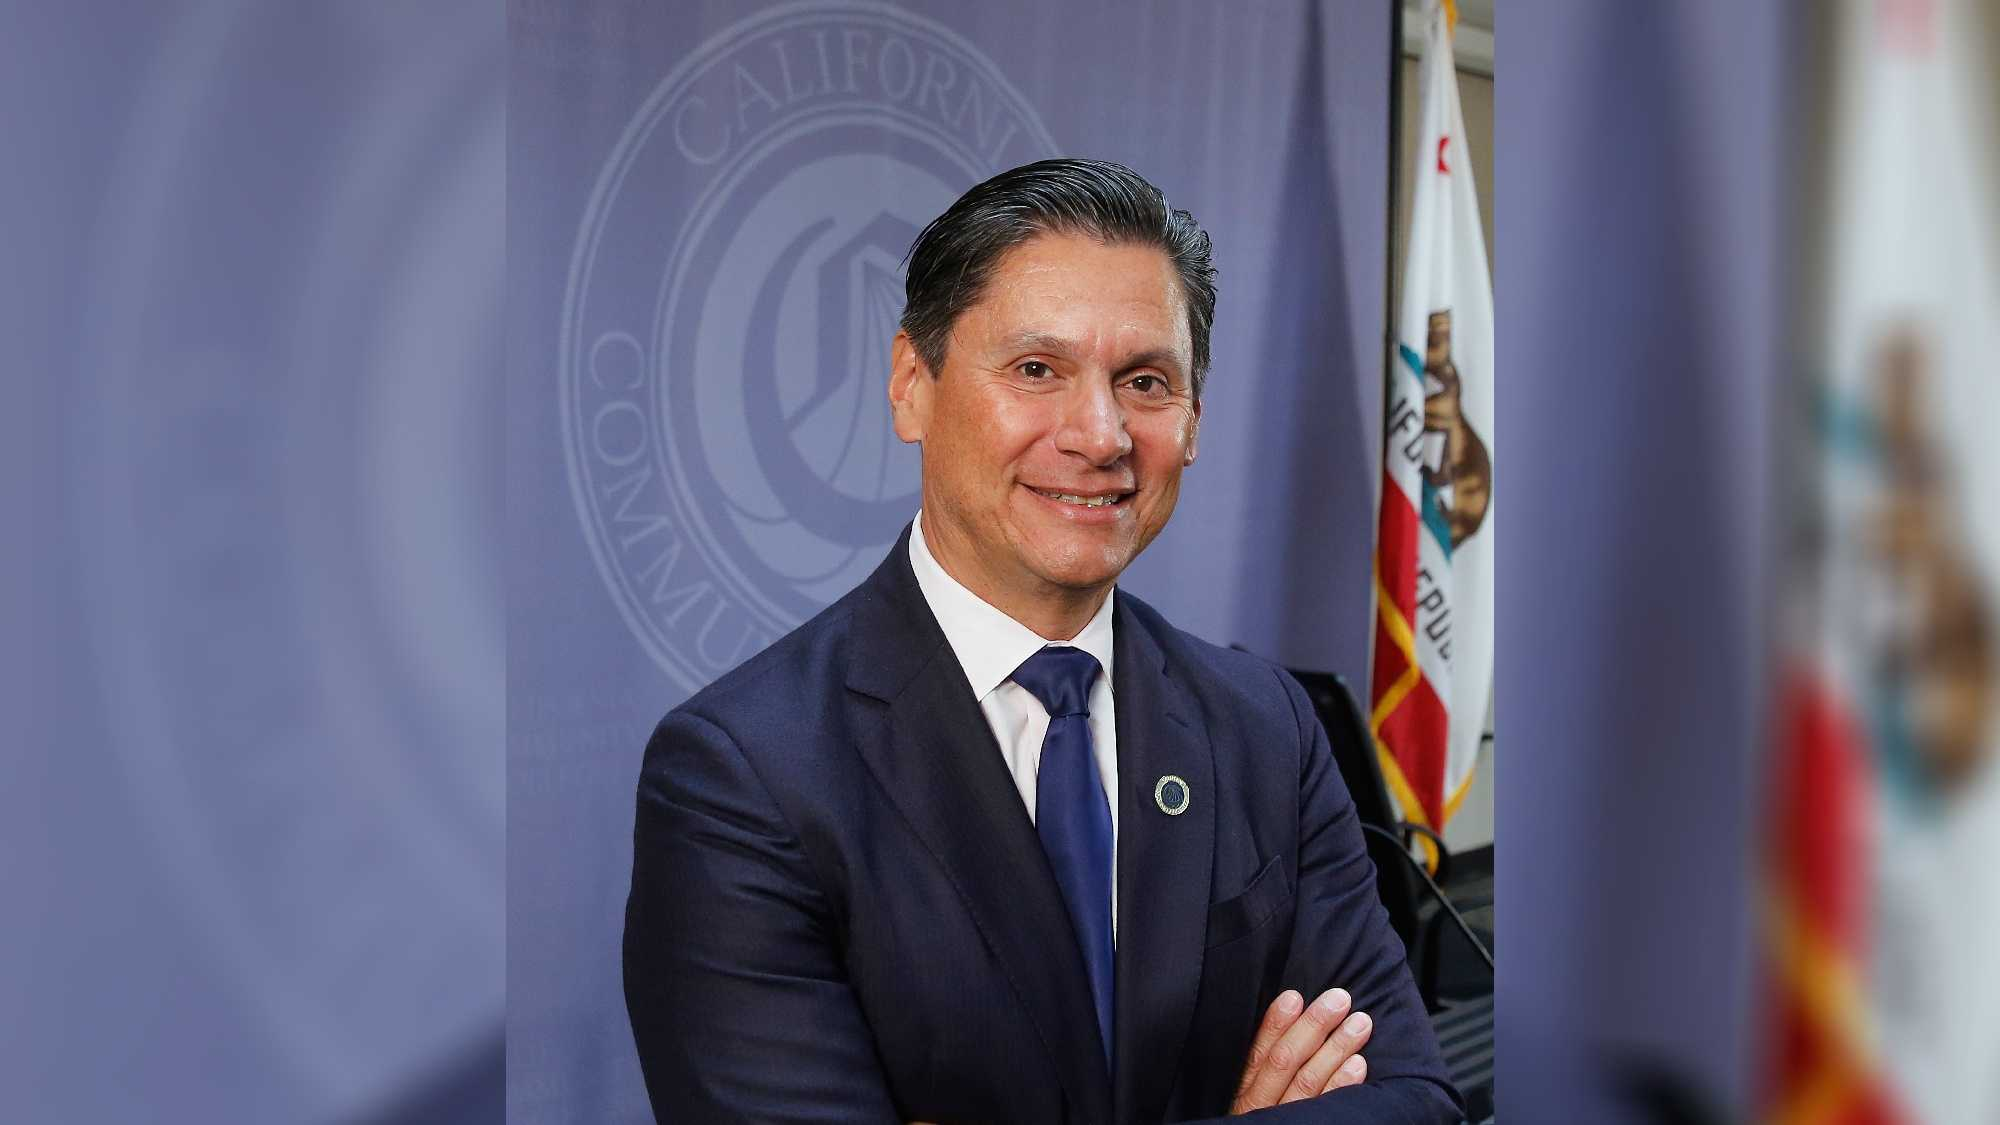 Eloy Ortiz Oakley poses for a photo after he was named chancellor of the California Community Colleges on Monday, July 18, 2016, in Sacramento, Calif. Oakley, the superintendent-president of the Long Beach Community College District, and a University of California regent, is the first Latino to head the 113-community college system.